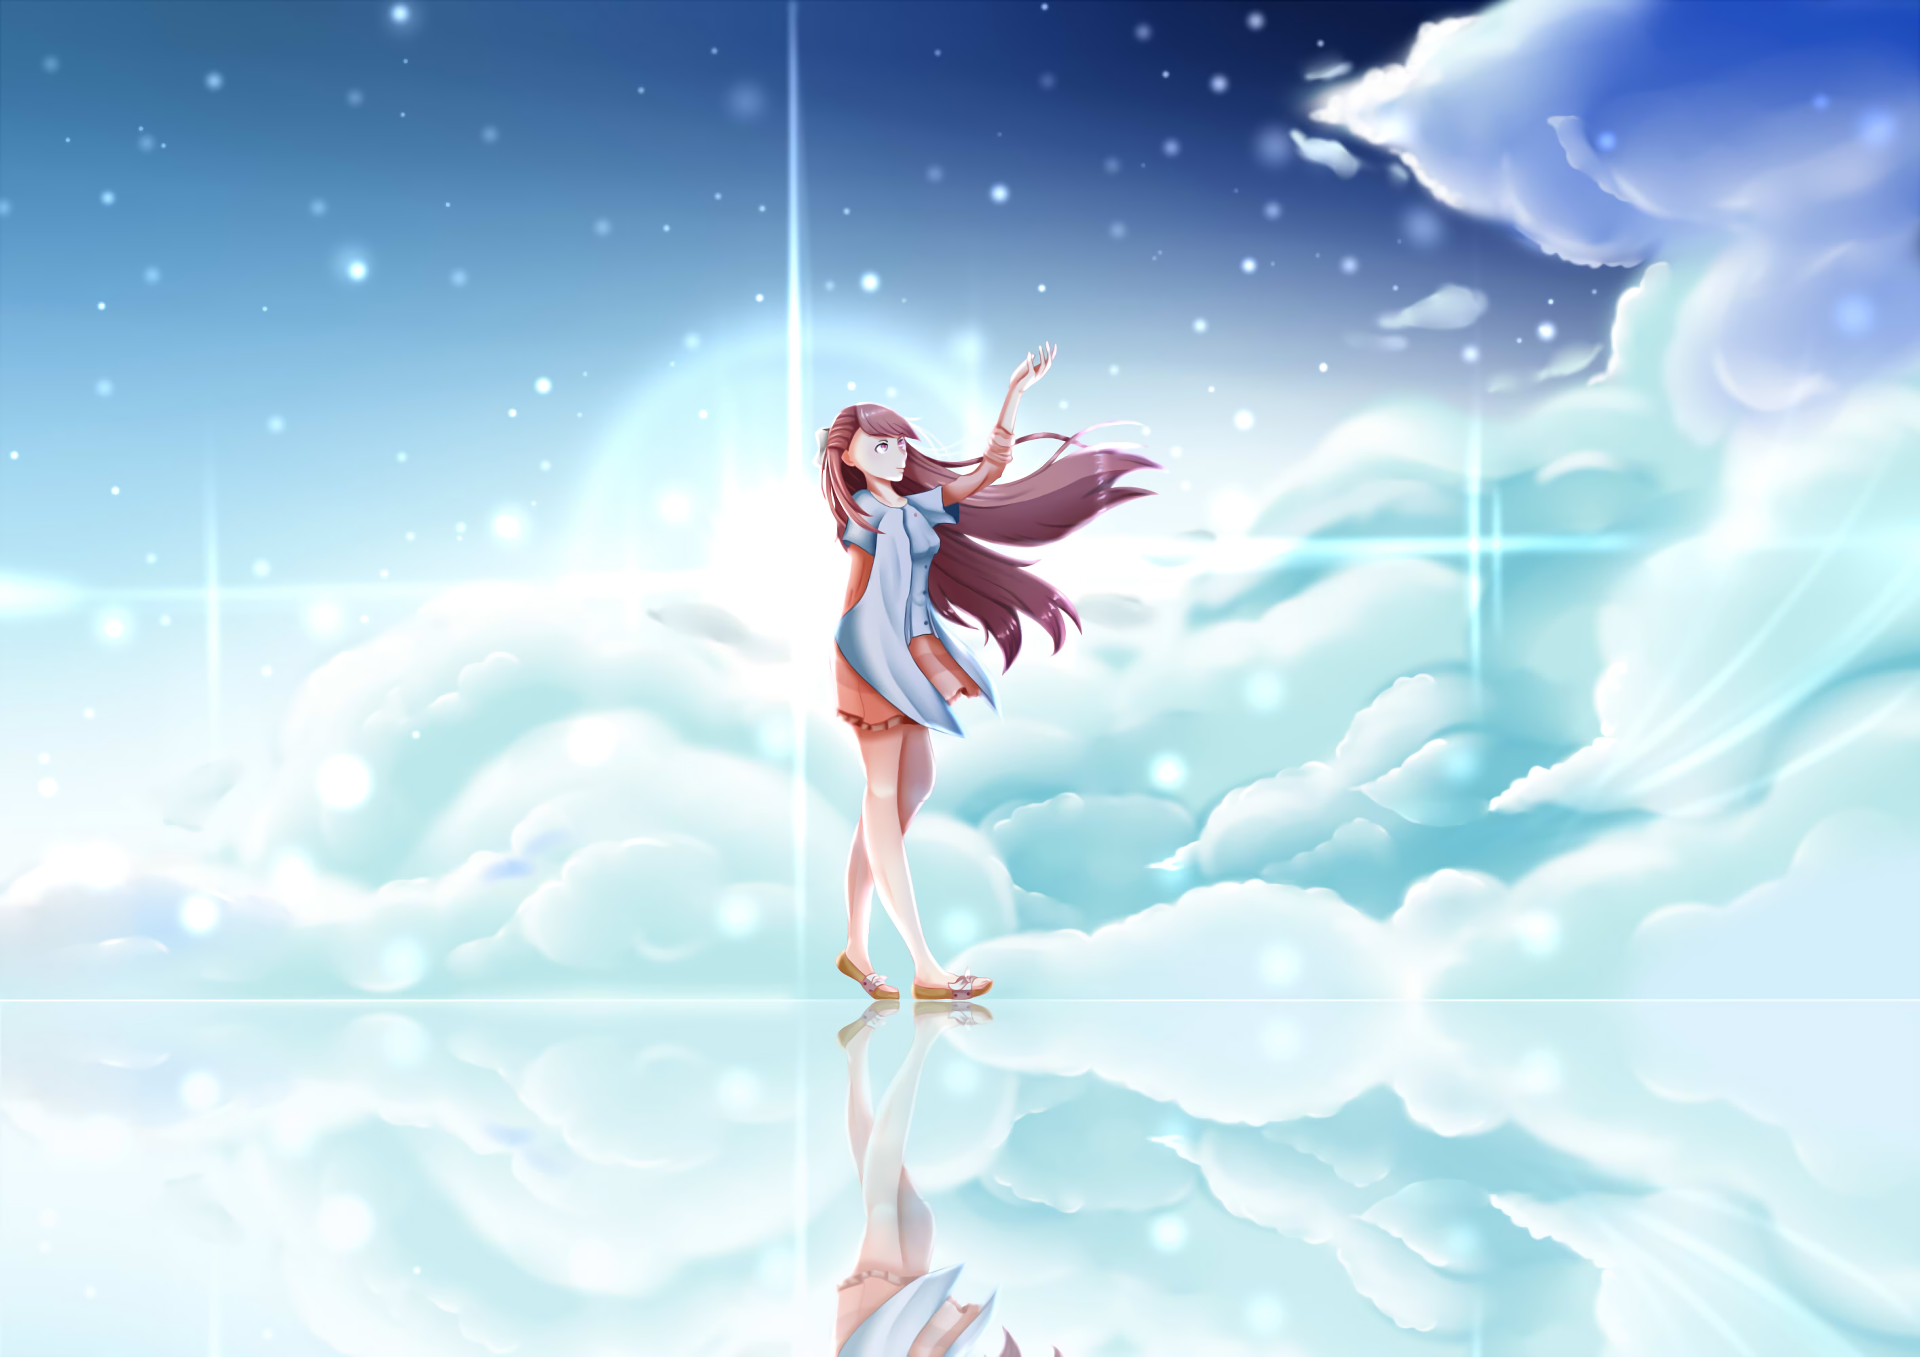 Shelter wallpapers pictures images - Anime backdrop wallpaper ...